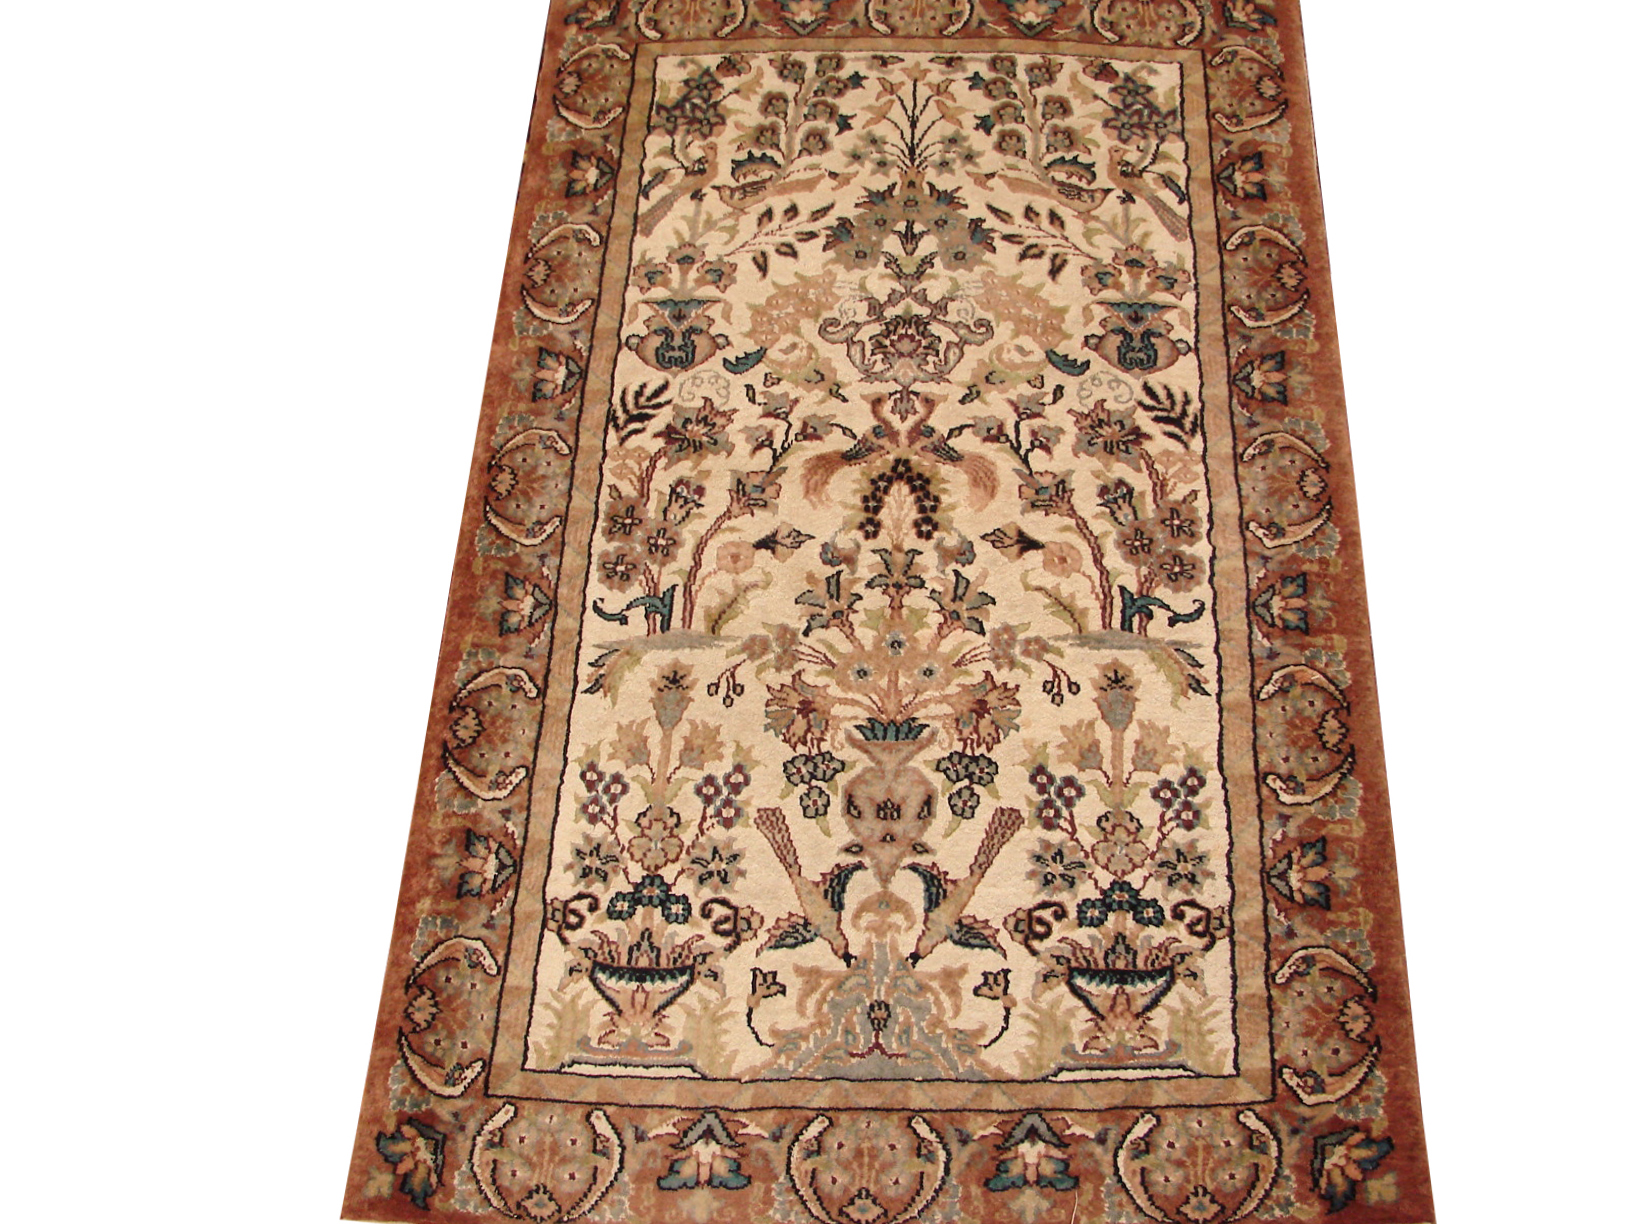 2X4 Traditional Hand Knotted Wool Area Rug - MR13489